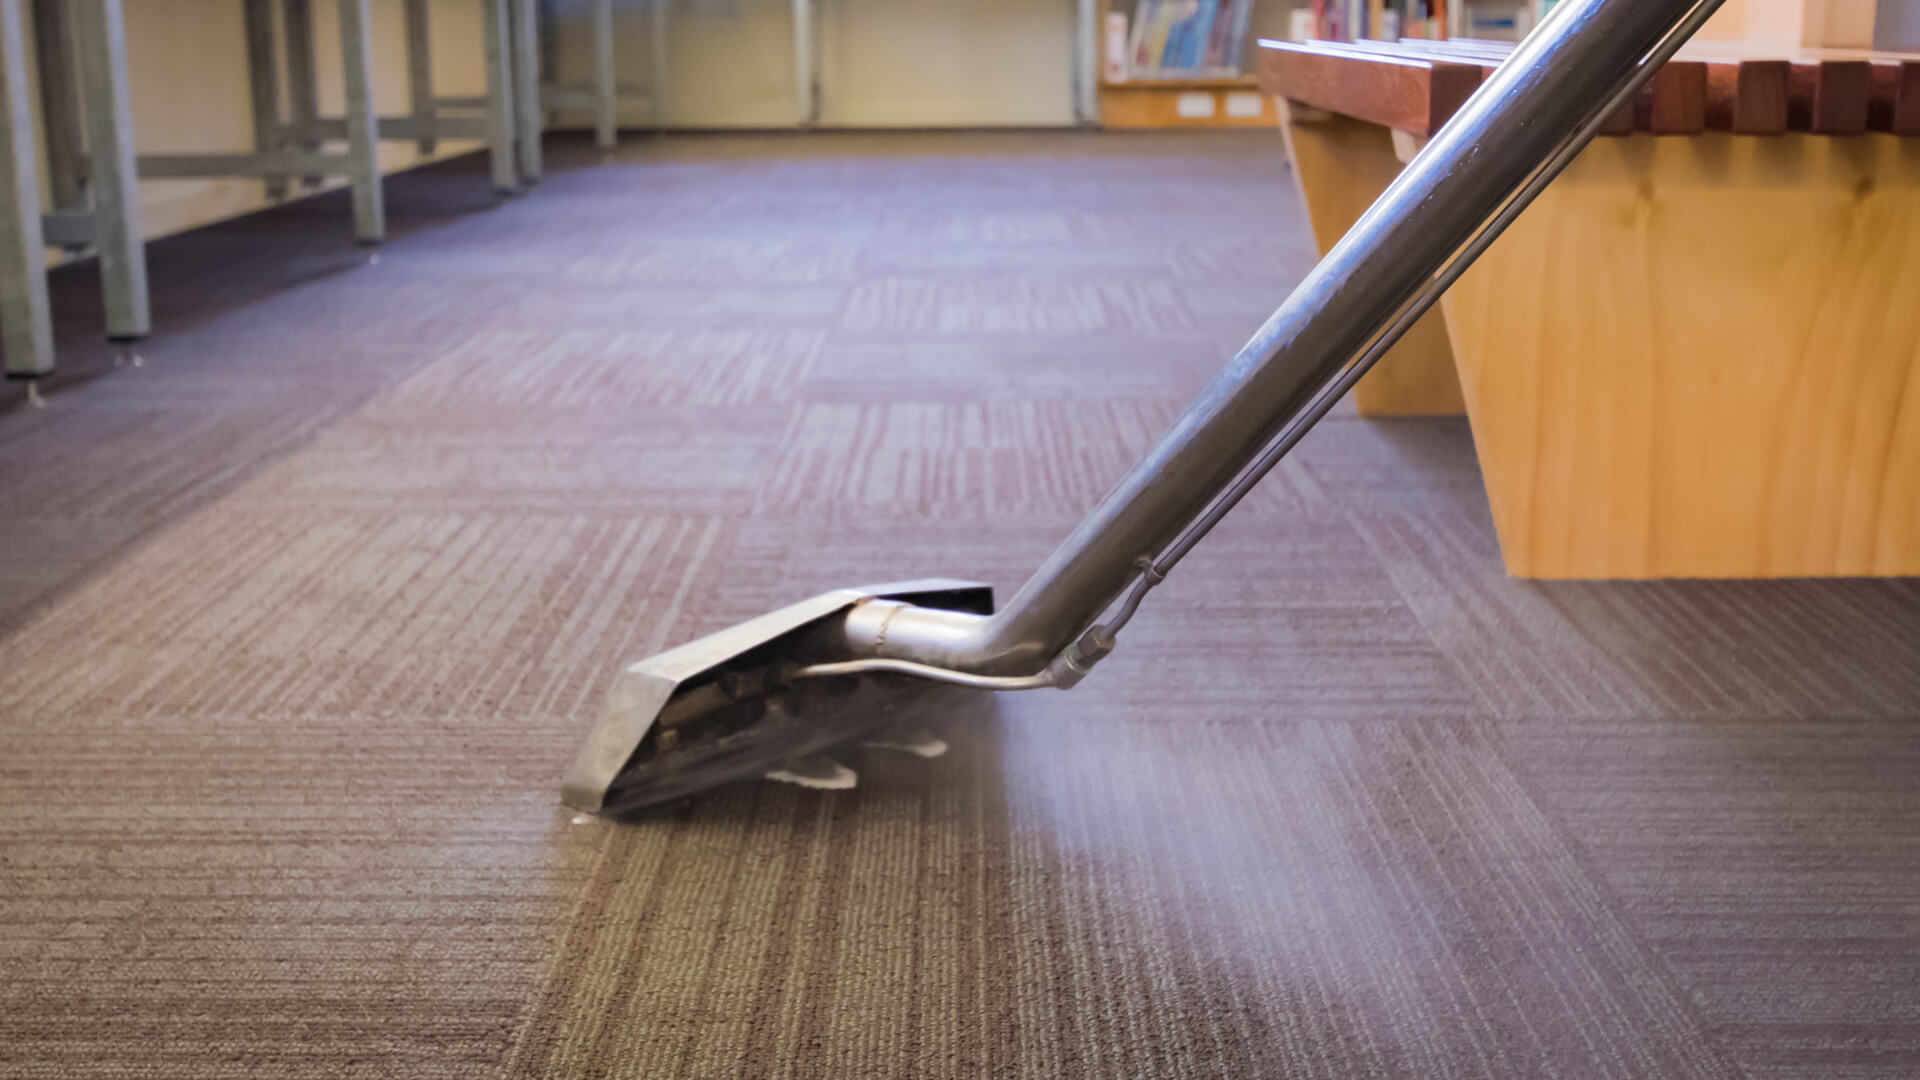 Commercial Carpet Cleaning in Norton and Mansfield MA